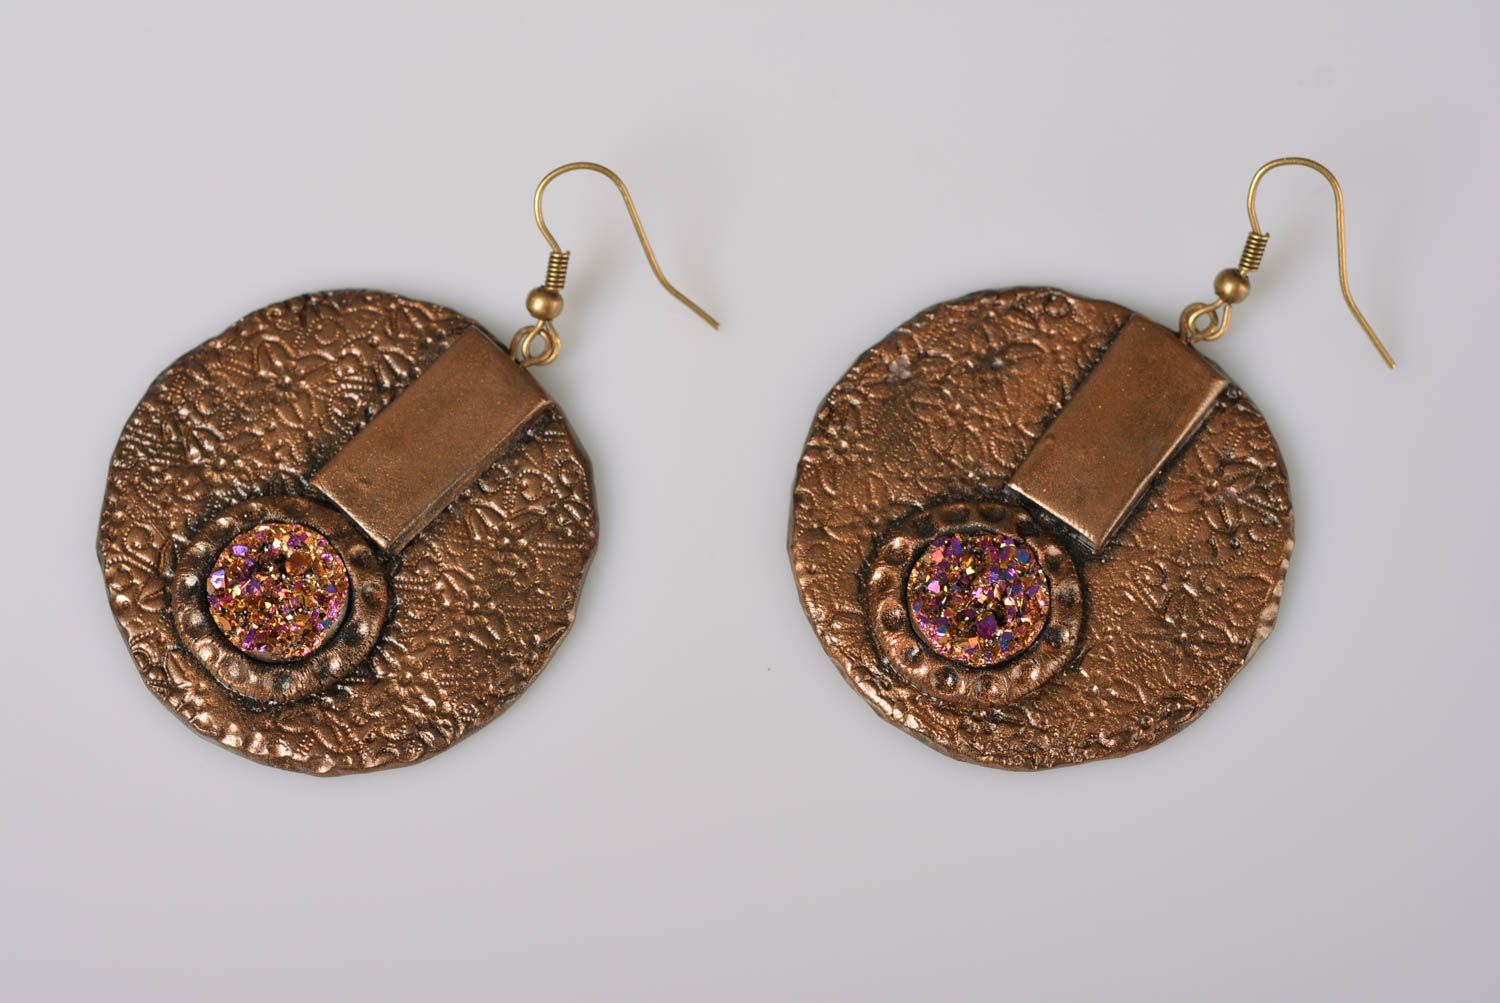 Polymer Clay Earrings Handmade Round Bronze Colored With Stones Styled On Druse